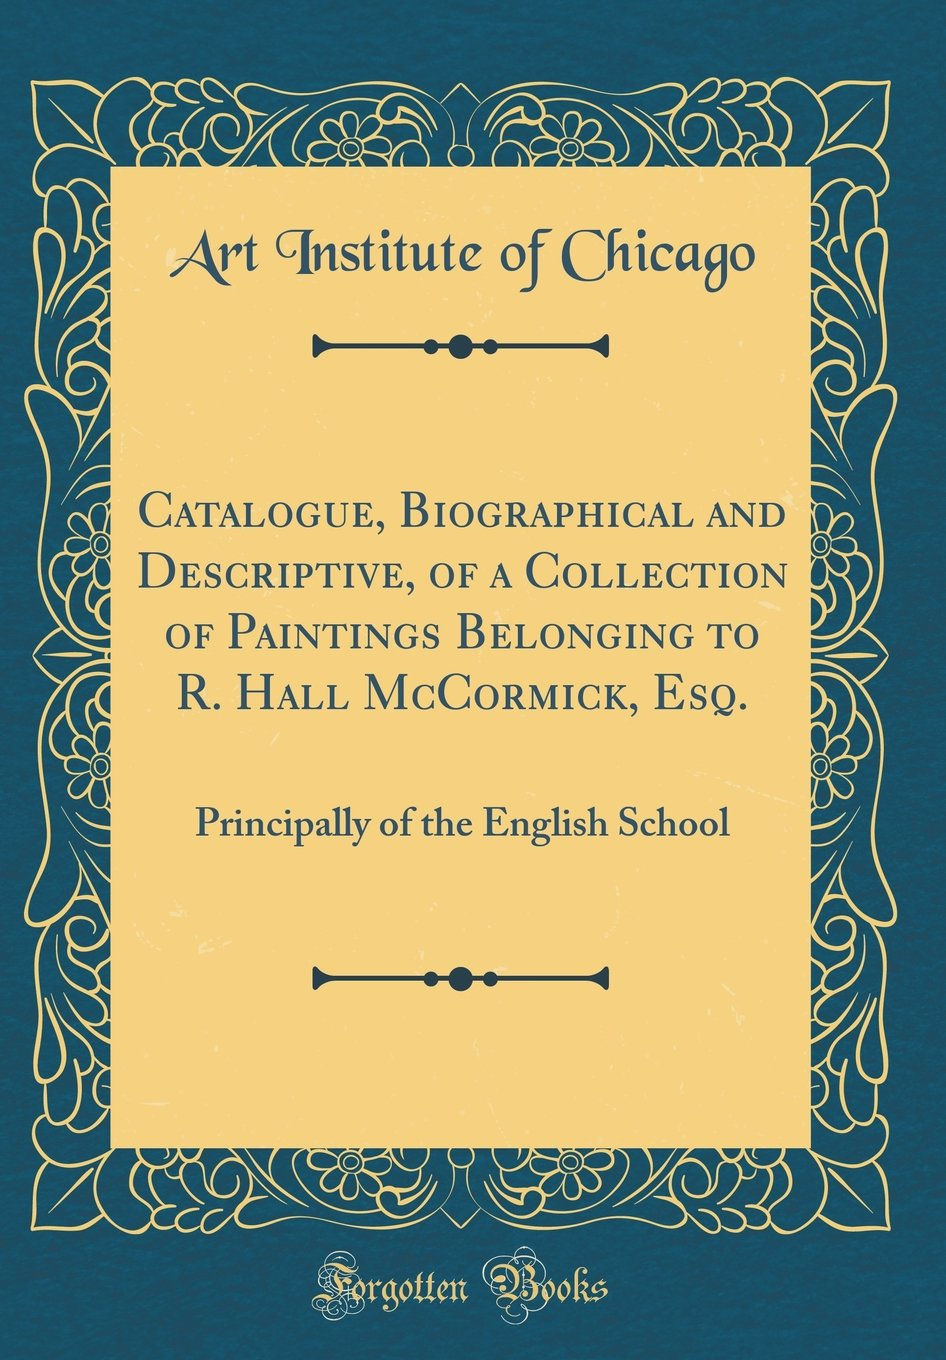 Catalogue, Biographical and Descriptive, of a Collection of Paintings Belonging to R. Hall McCormick, Esq.: Principally of the English School (Classic Reprint) pdf epub